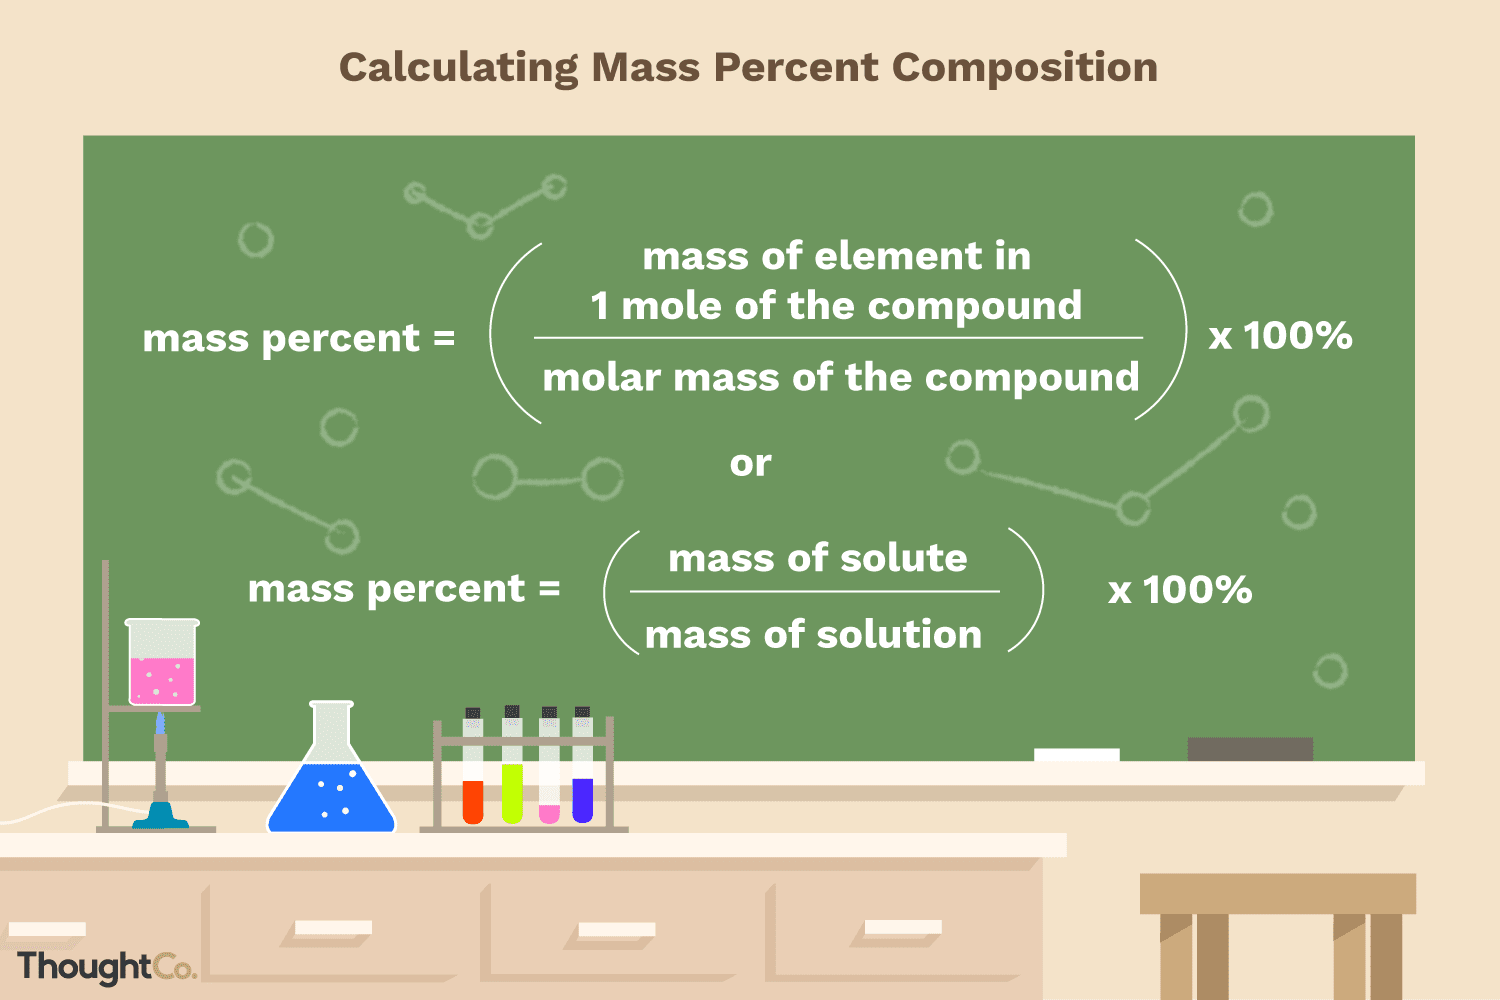 How to Calculate Mass Percent Composition